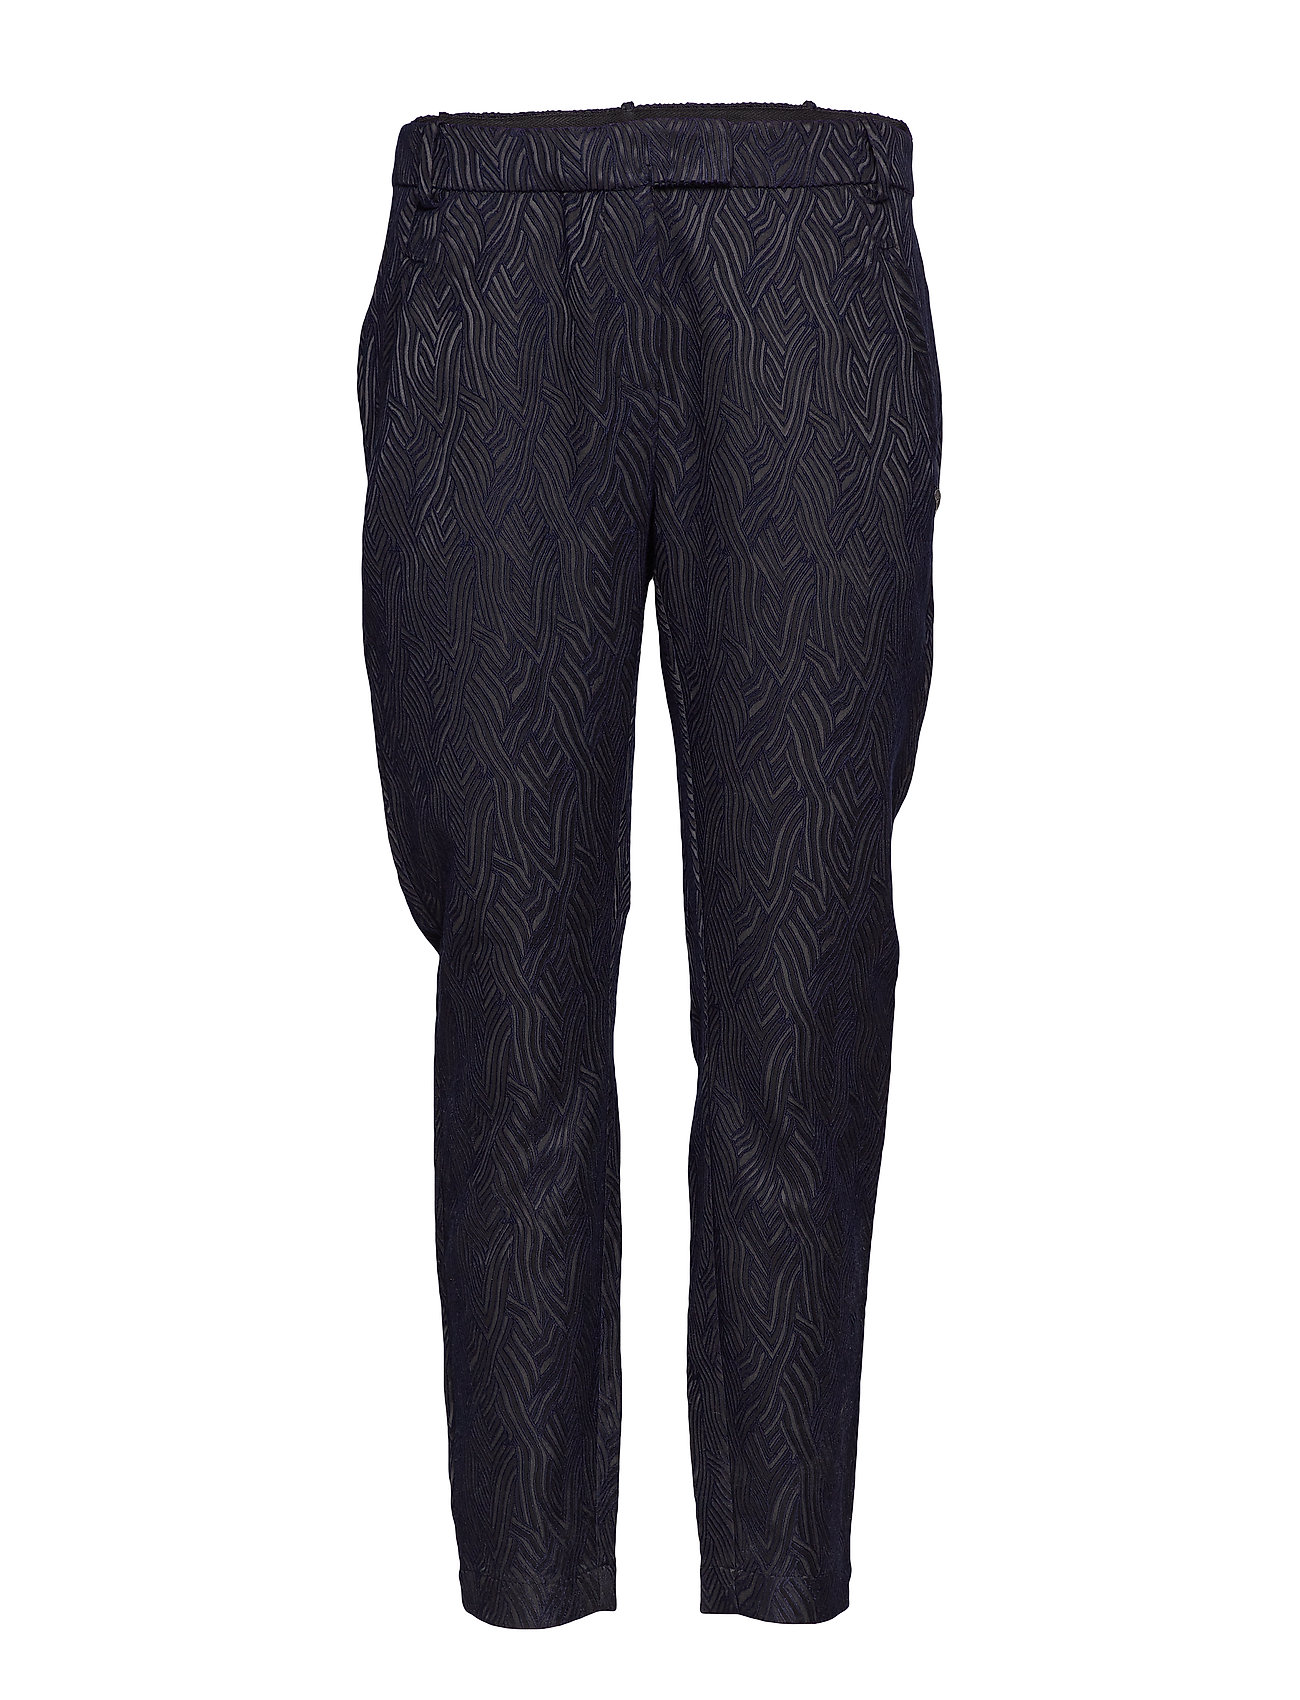 Coster Copenhagen Pants in wave jacquard stretch - Ju - BLACK